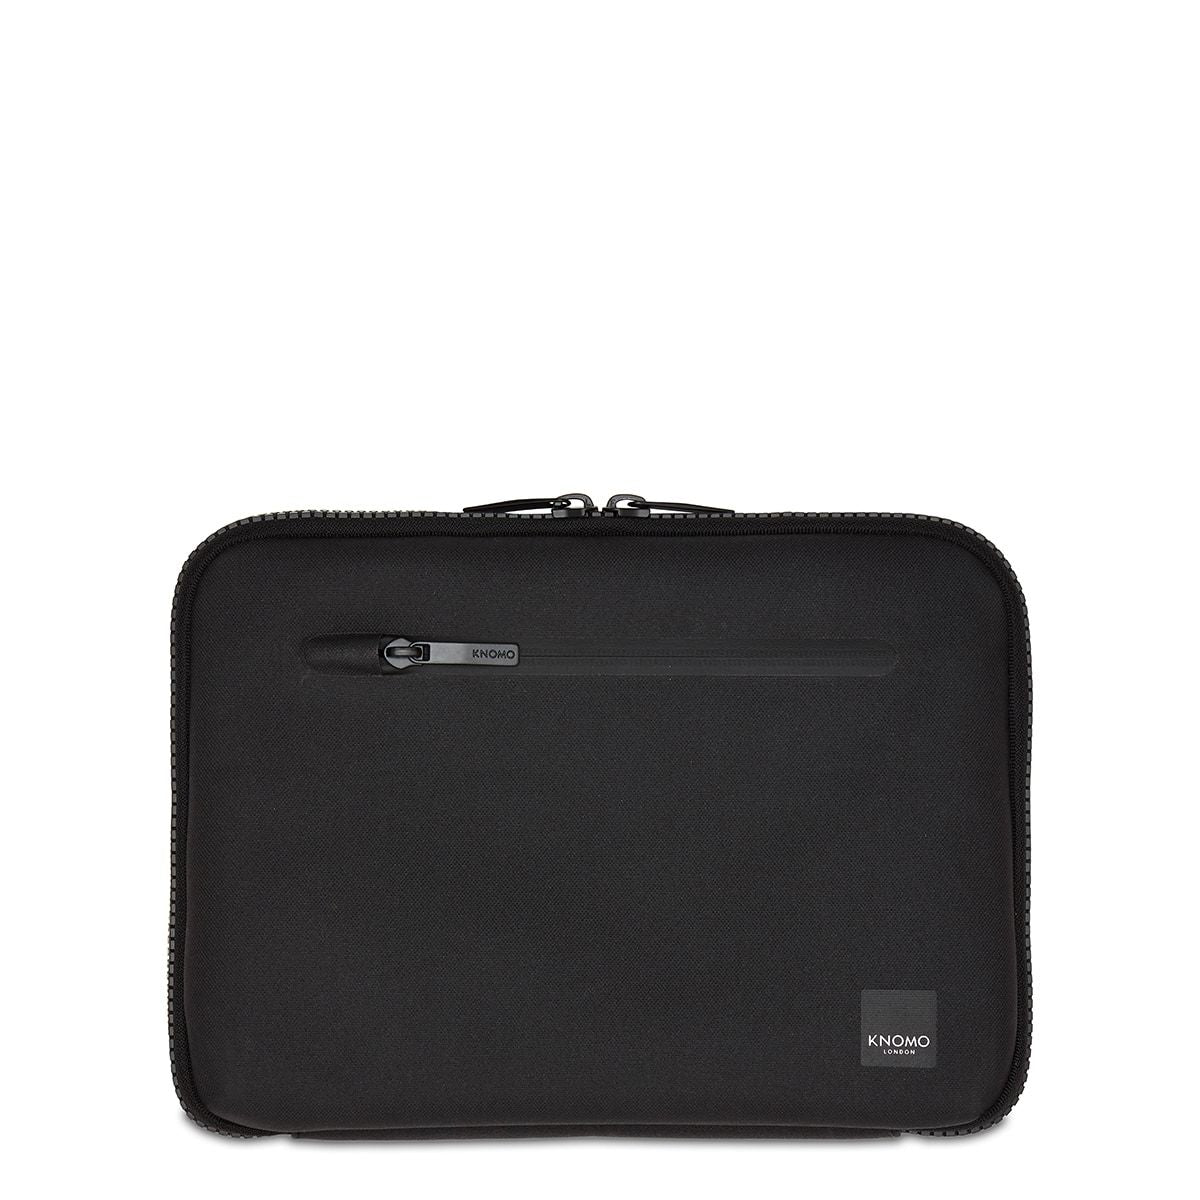 "Thames Knomad Organiser Tech Organiser For Everyday - 10.5"" -  10.5"" 